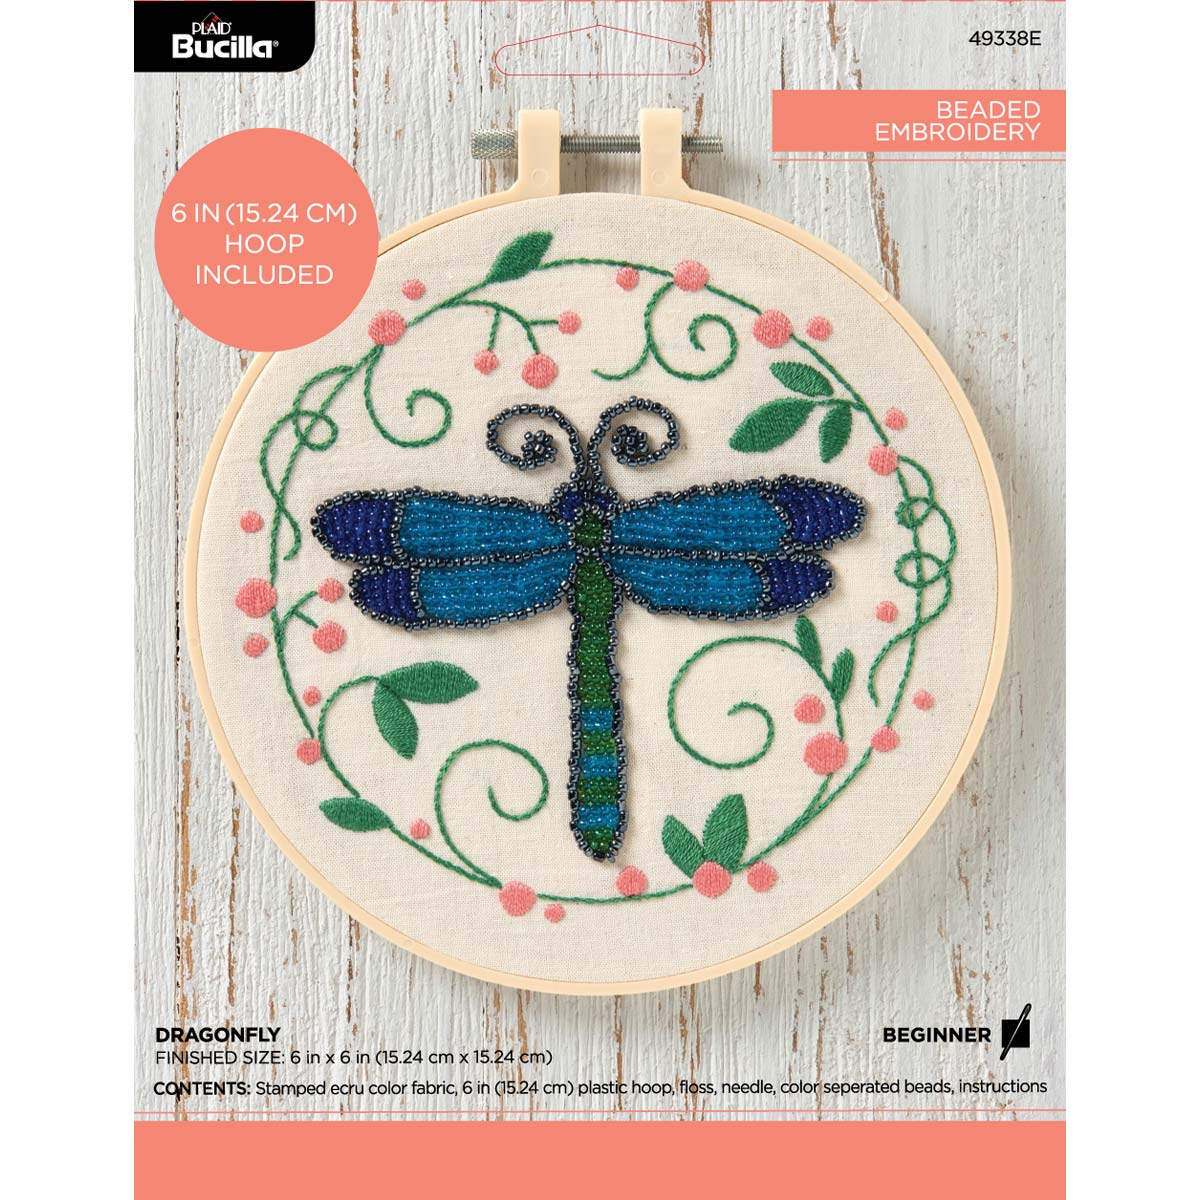 Bucilla ® Stamped Beaded Embroidery - Dragonfly - 49338E